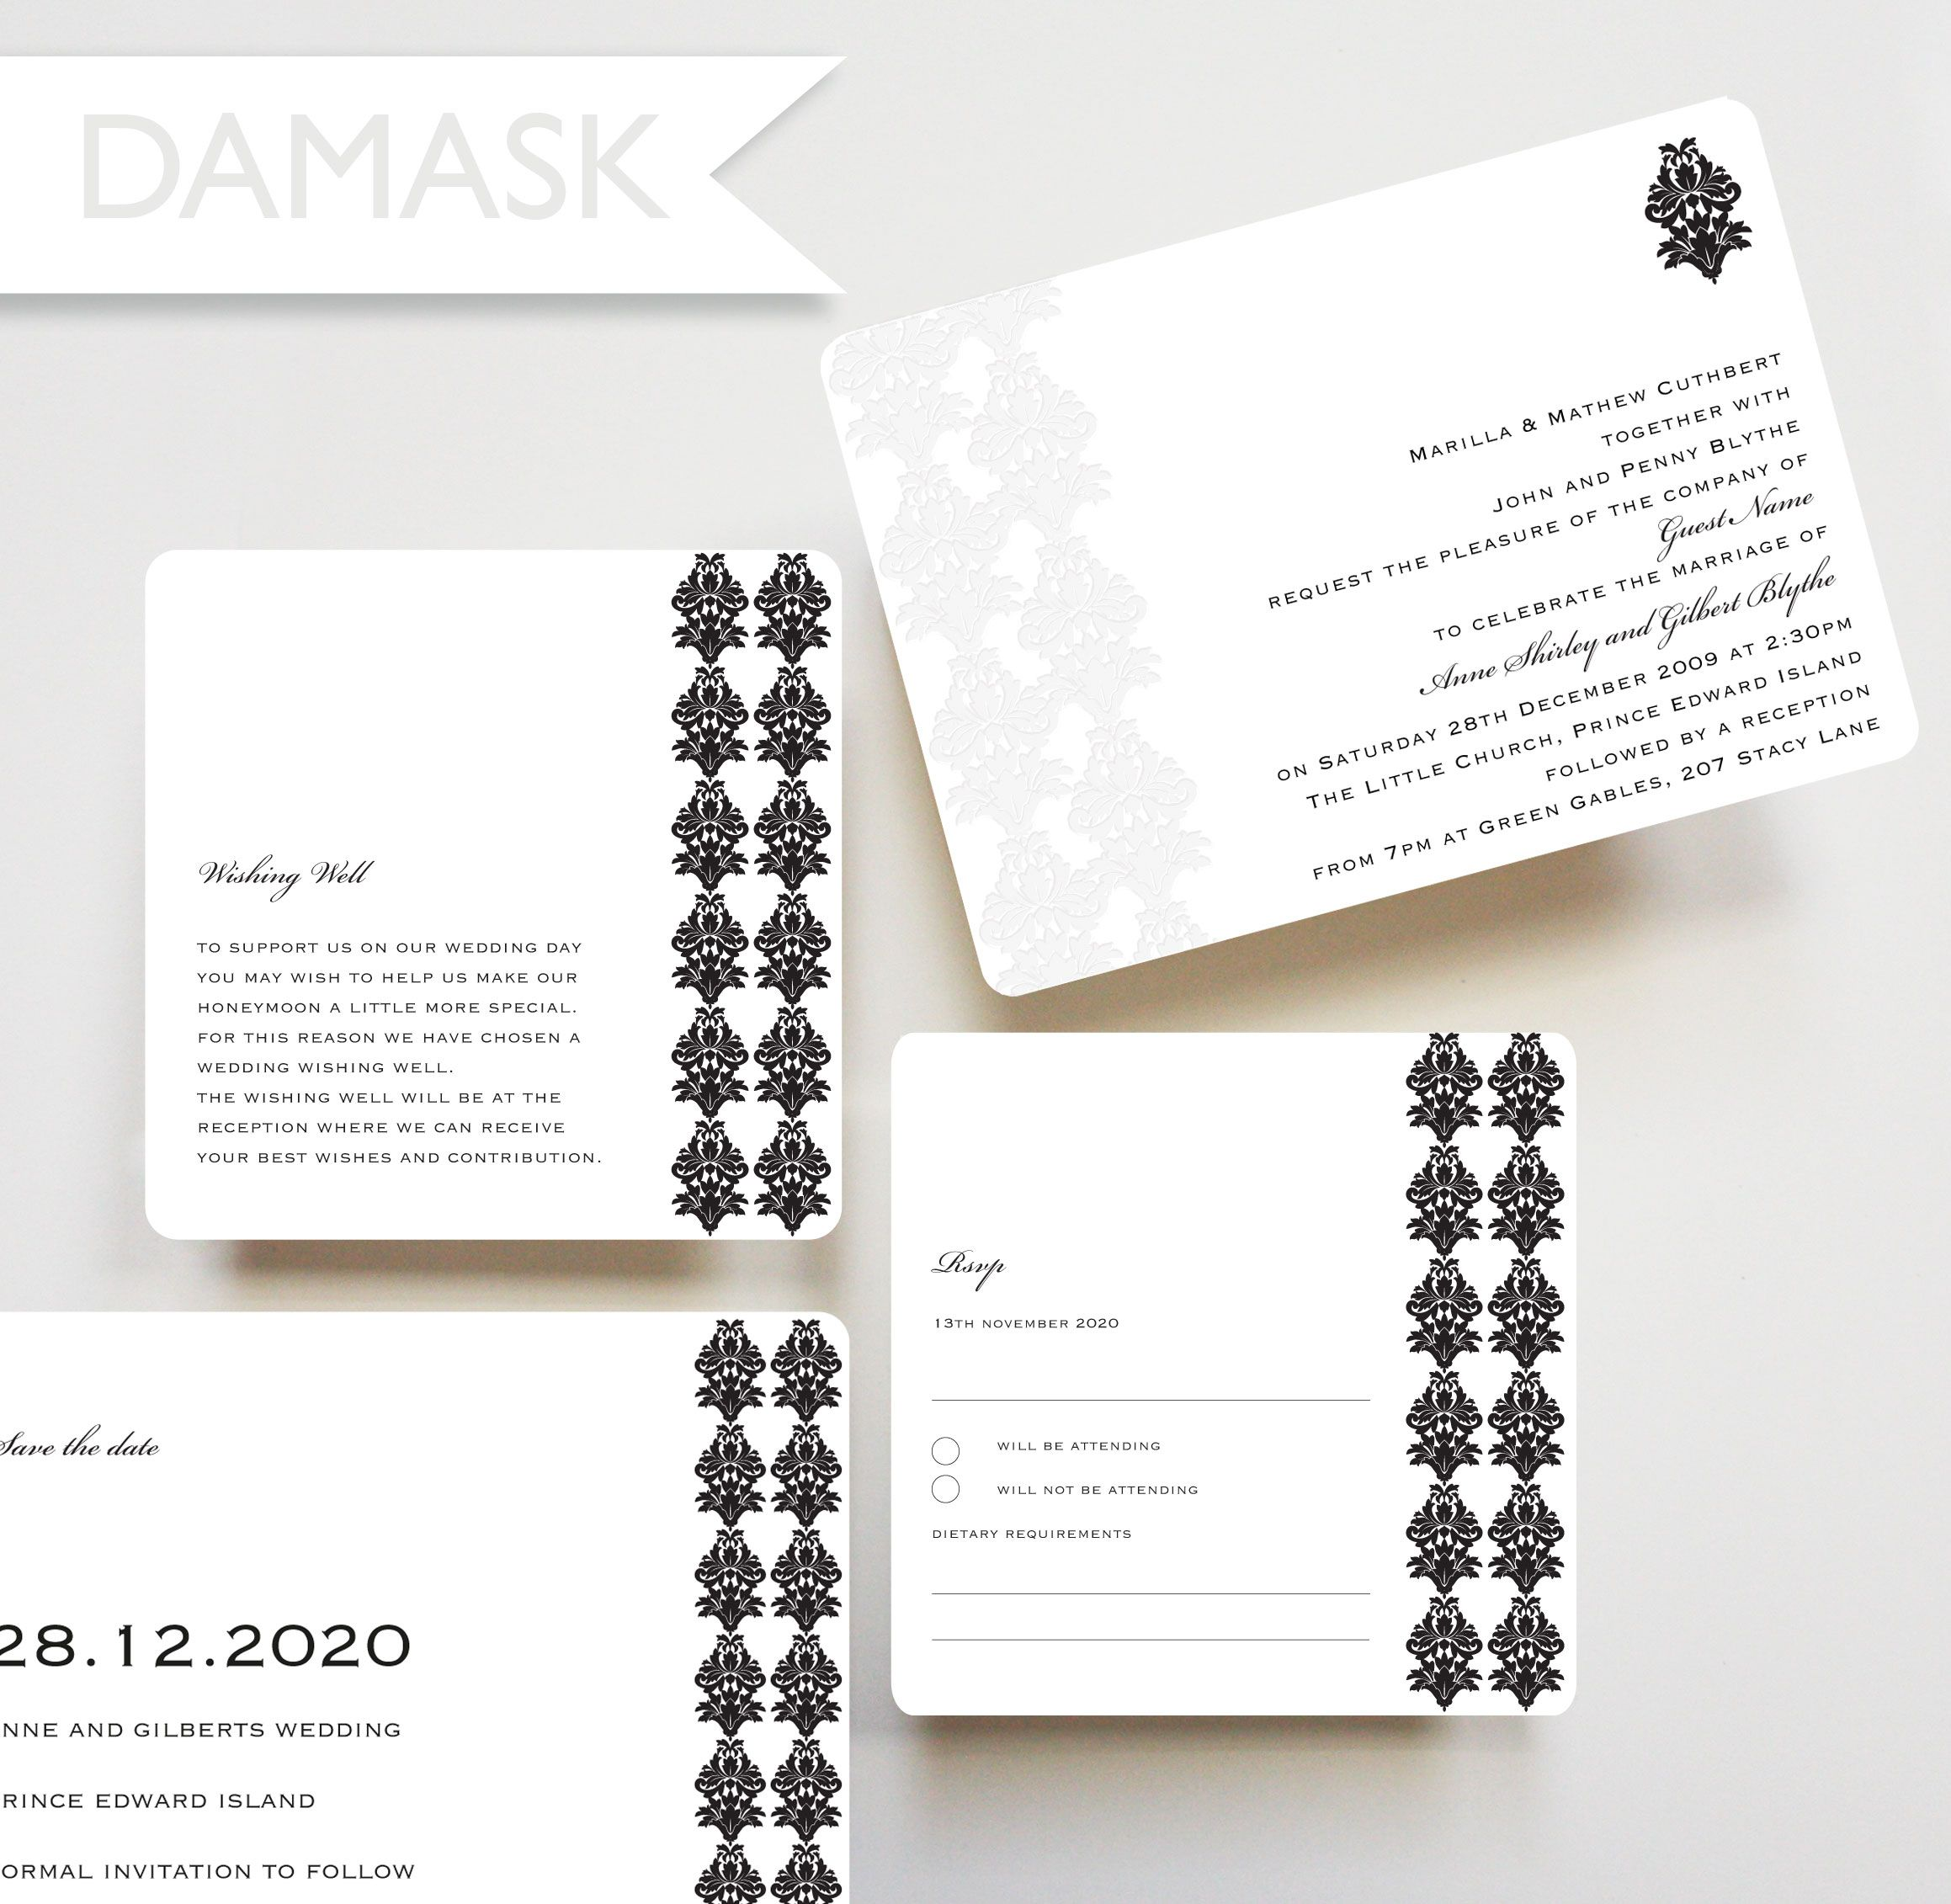 Damask invitation, save the date card, RSVP card, wishing well card ...